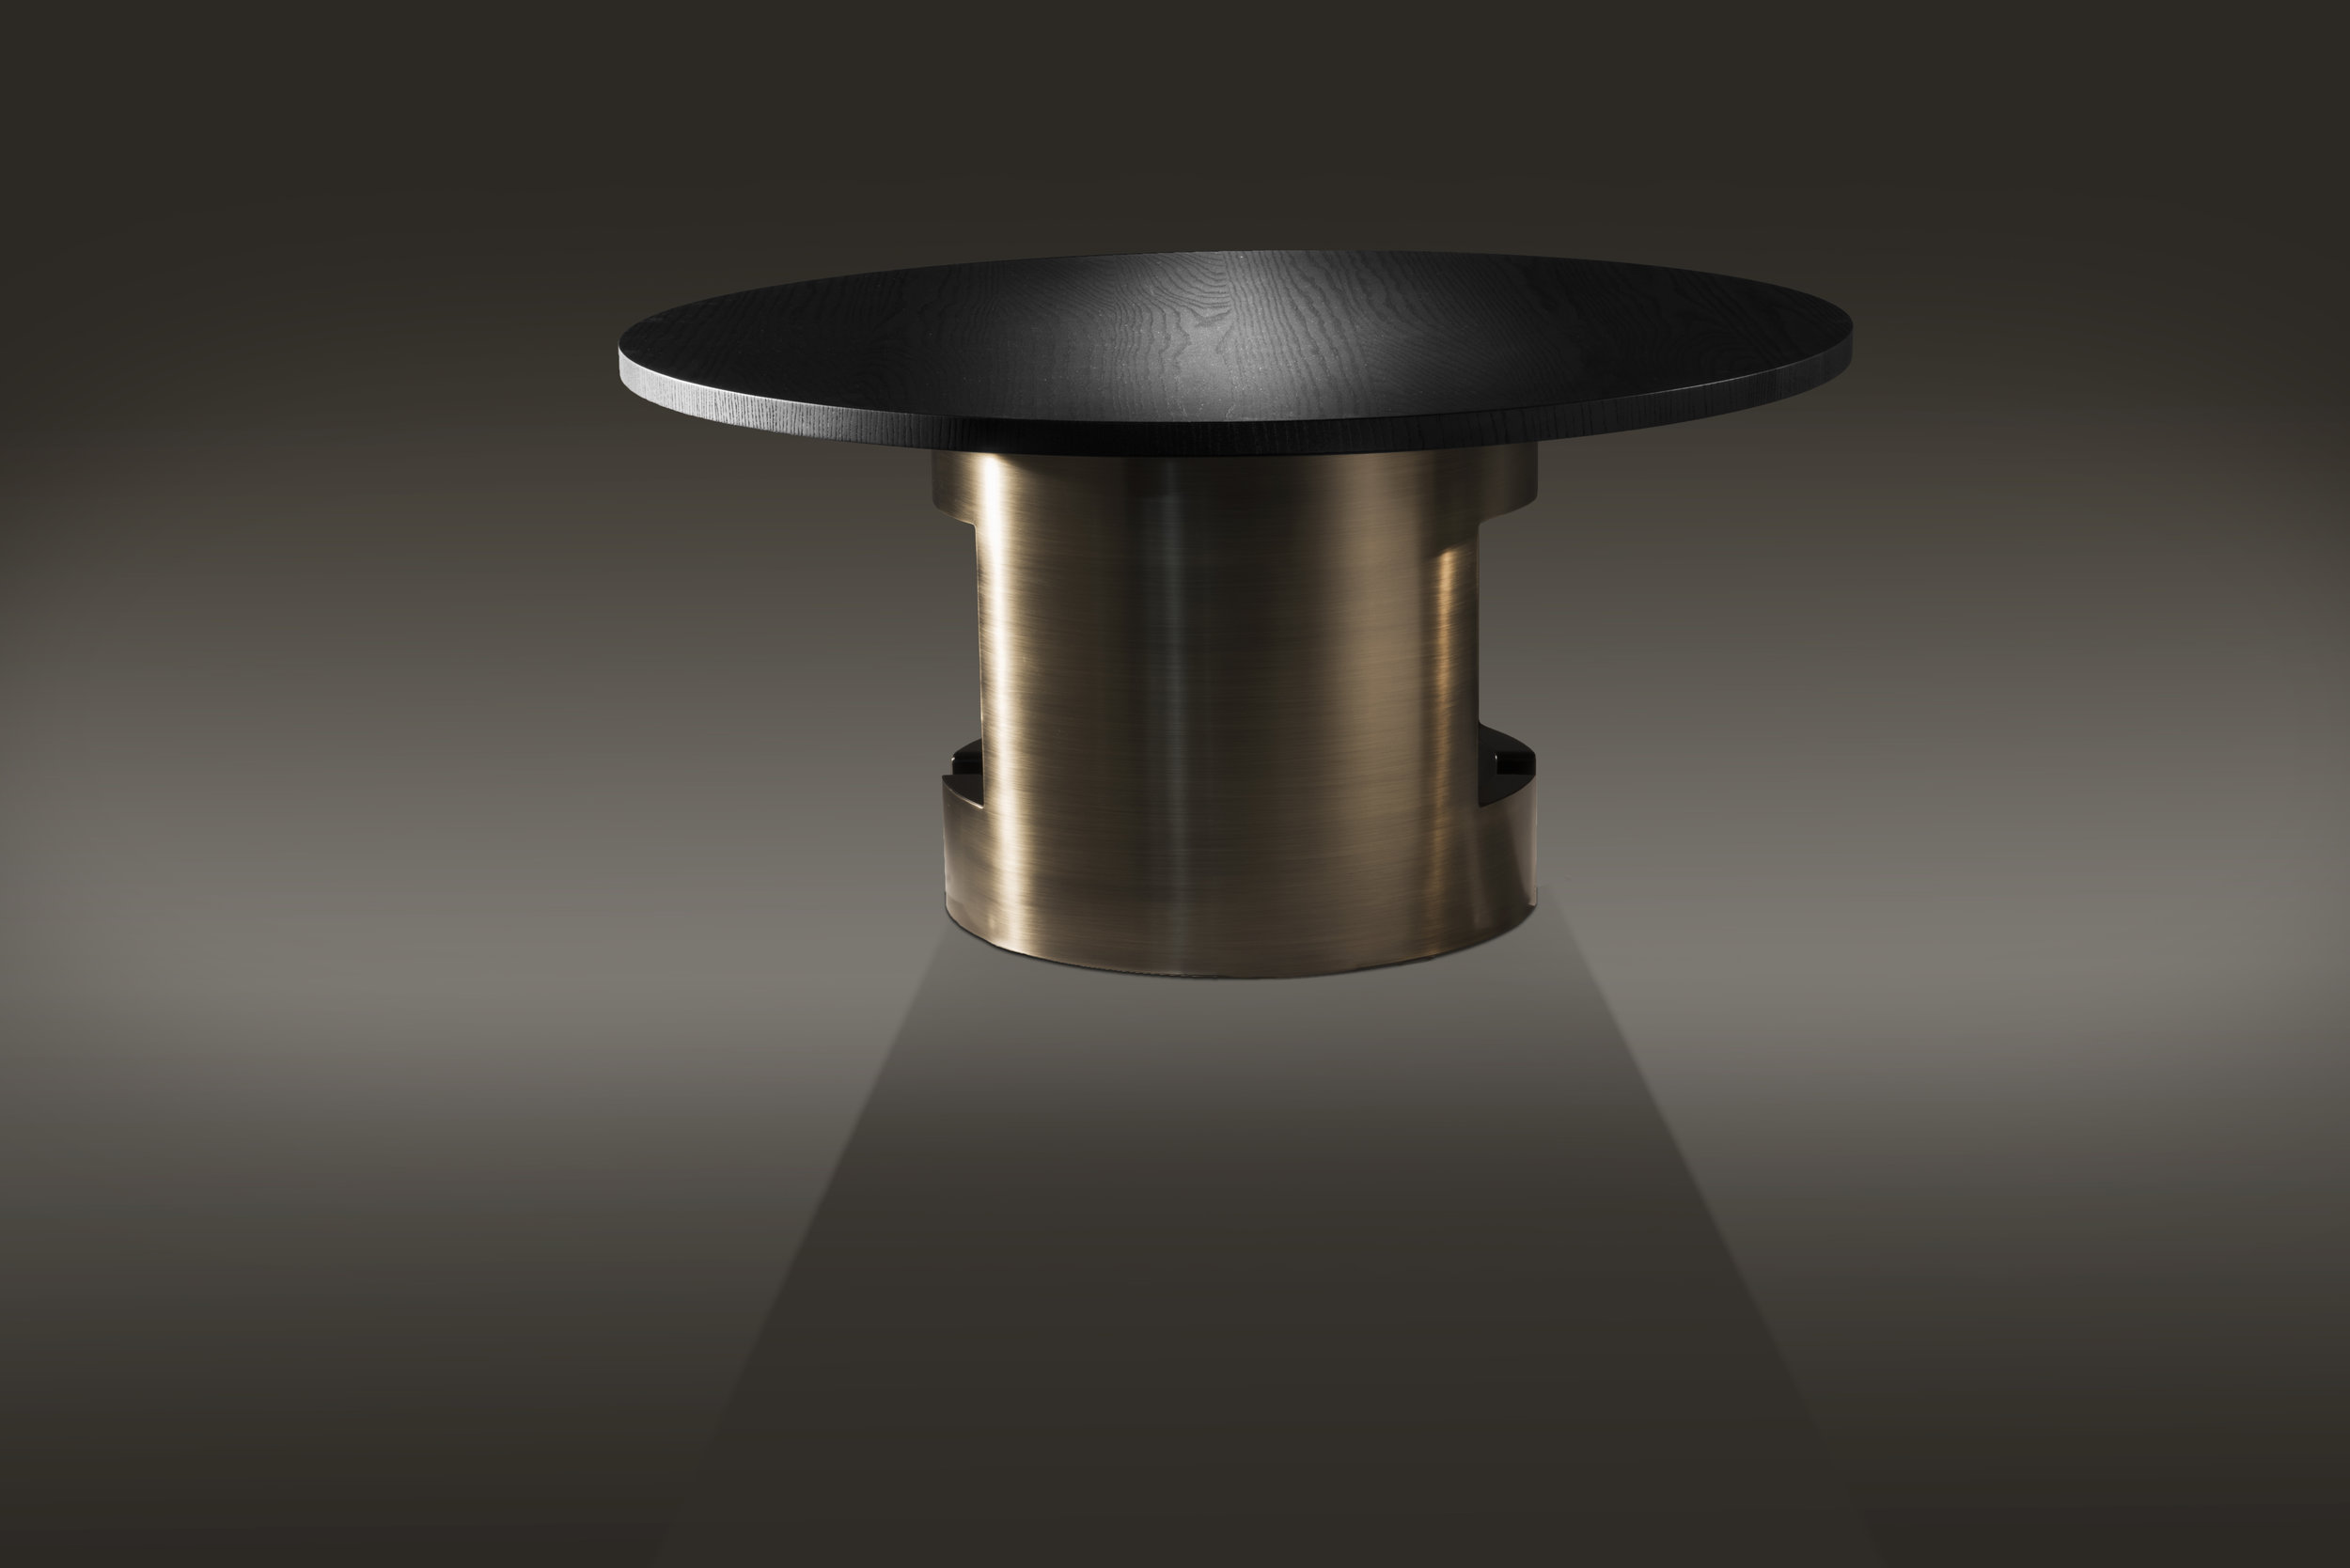 Table has burnished brass outer layer finish with a charcoal gray laquered wood interior finish and an ebonized ash wood top.